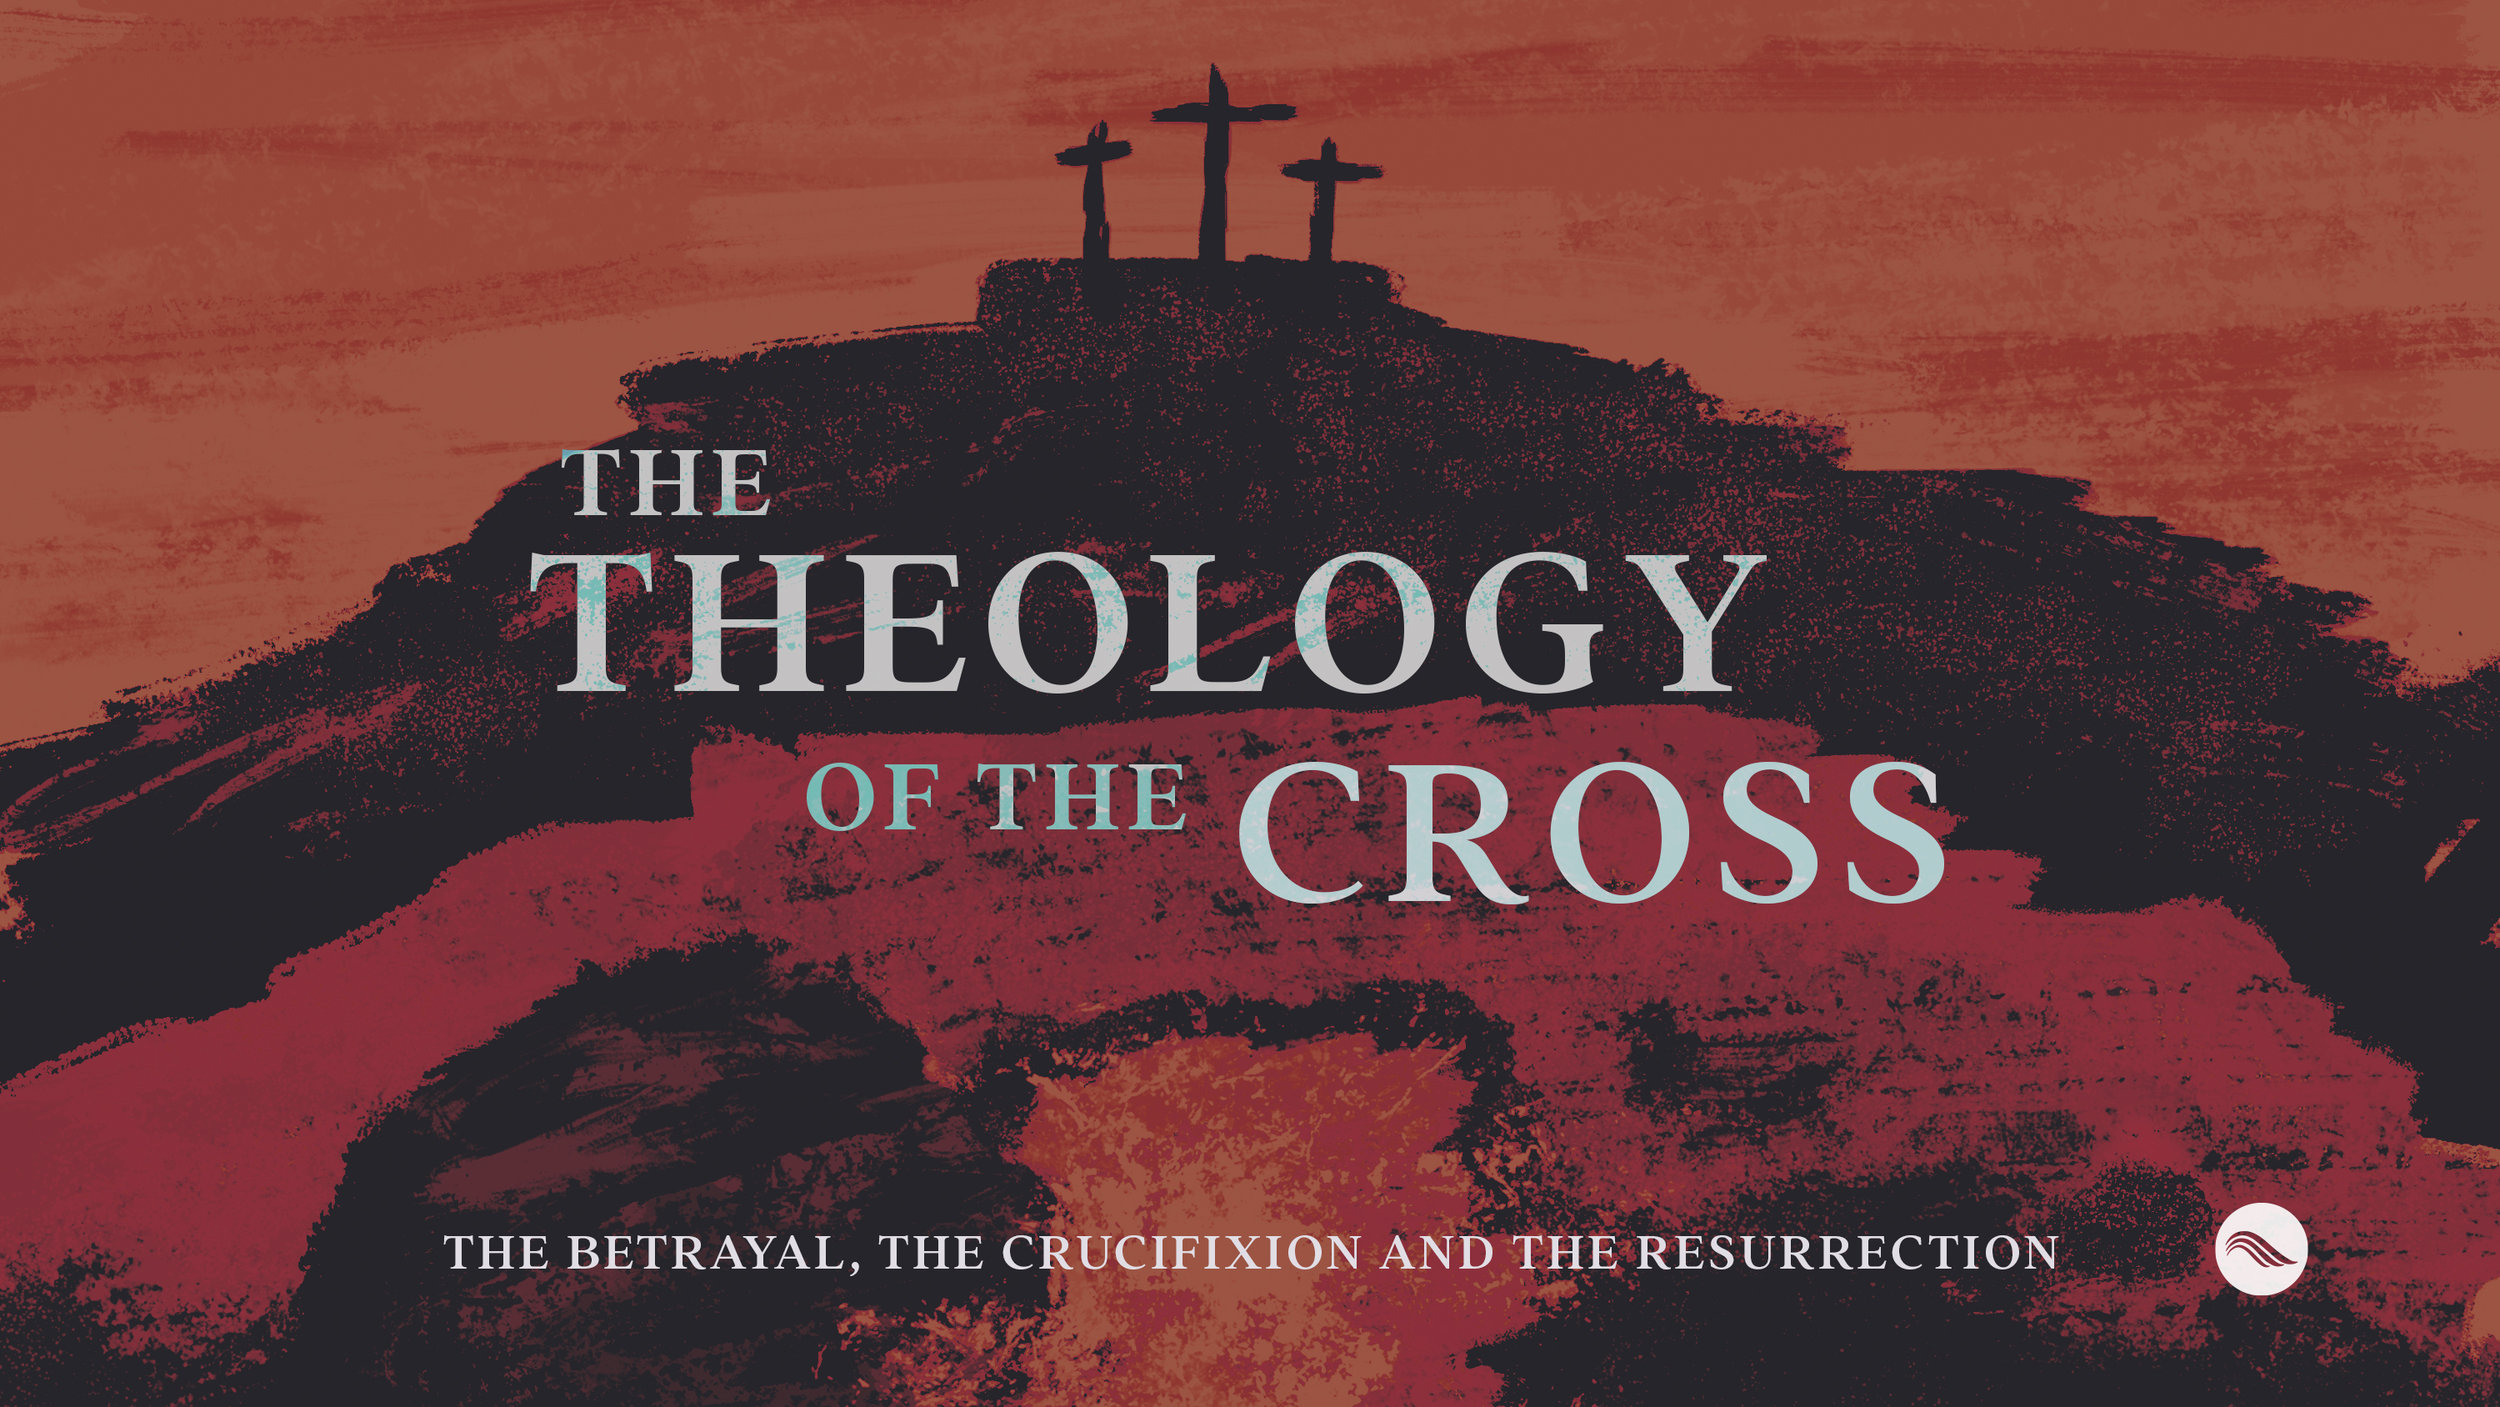 Theology Of The Cross_Red_16x9.jpg